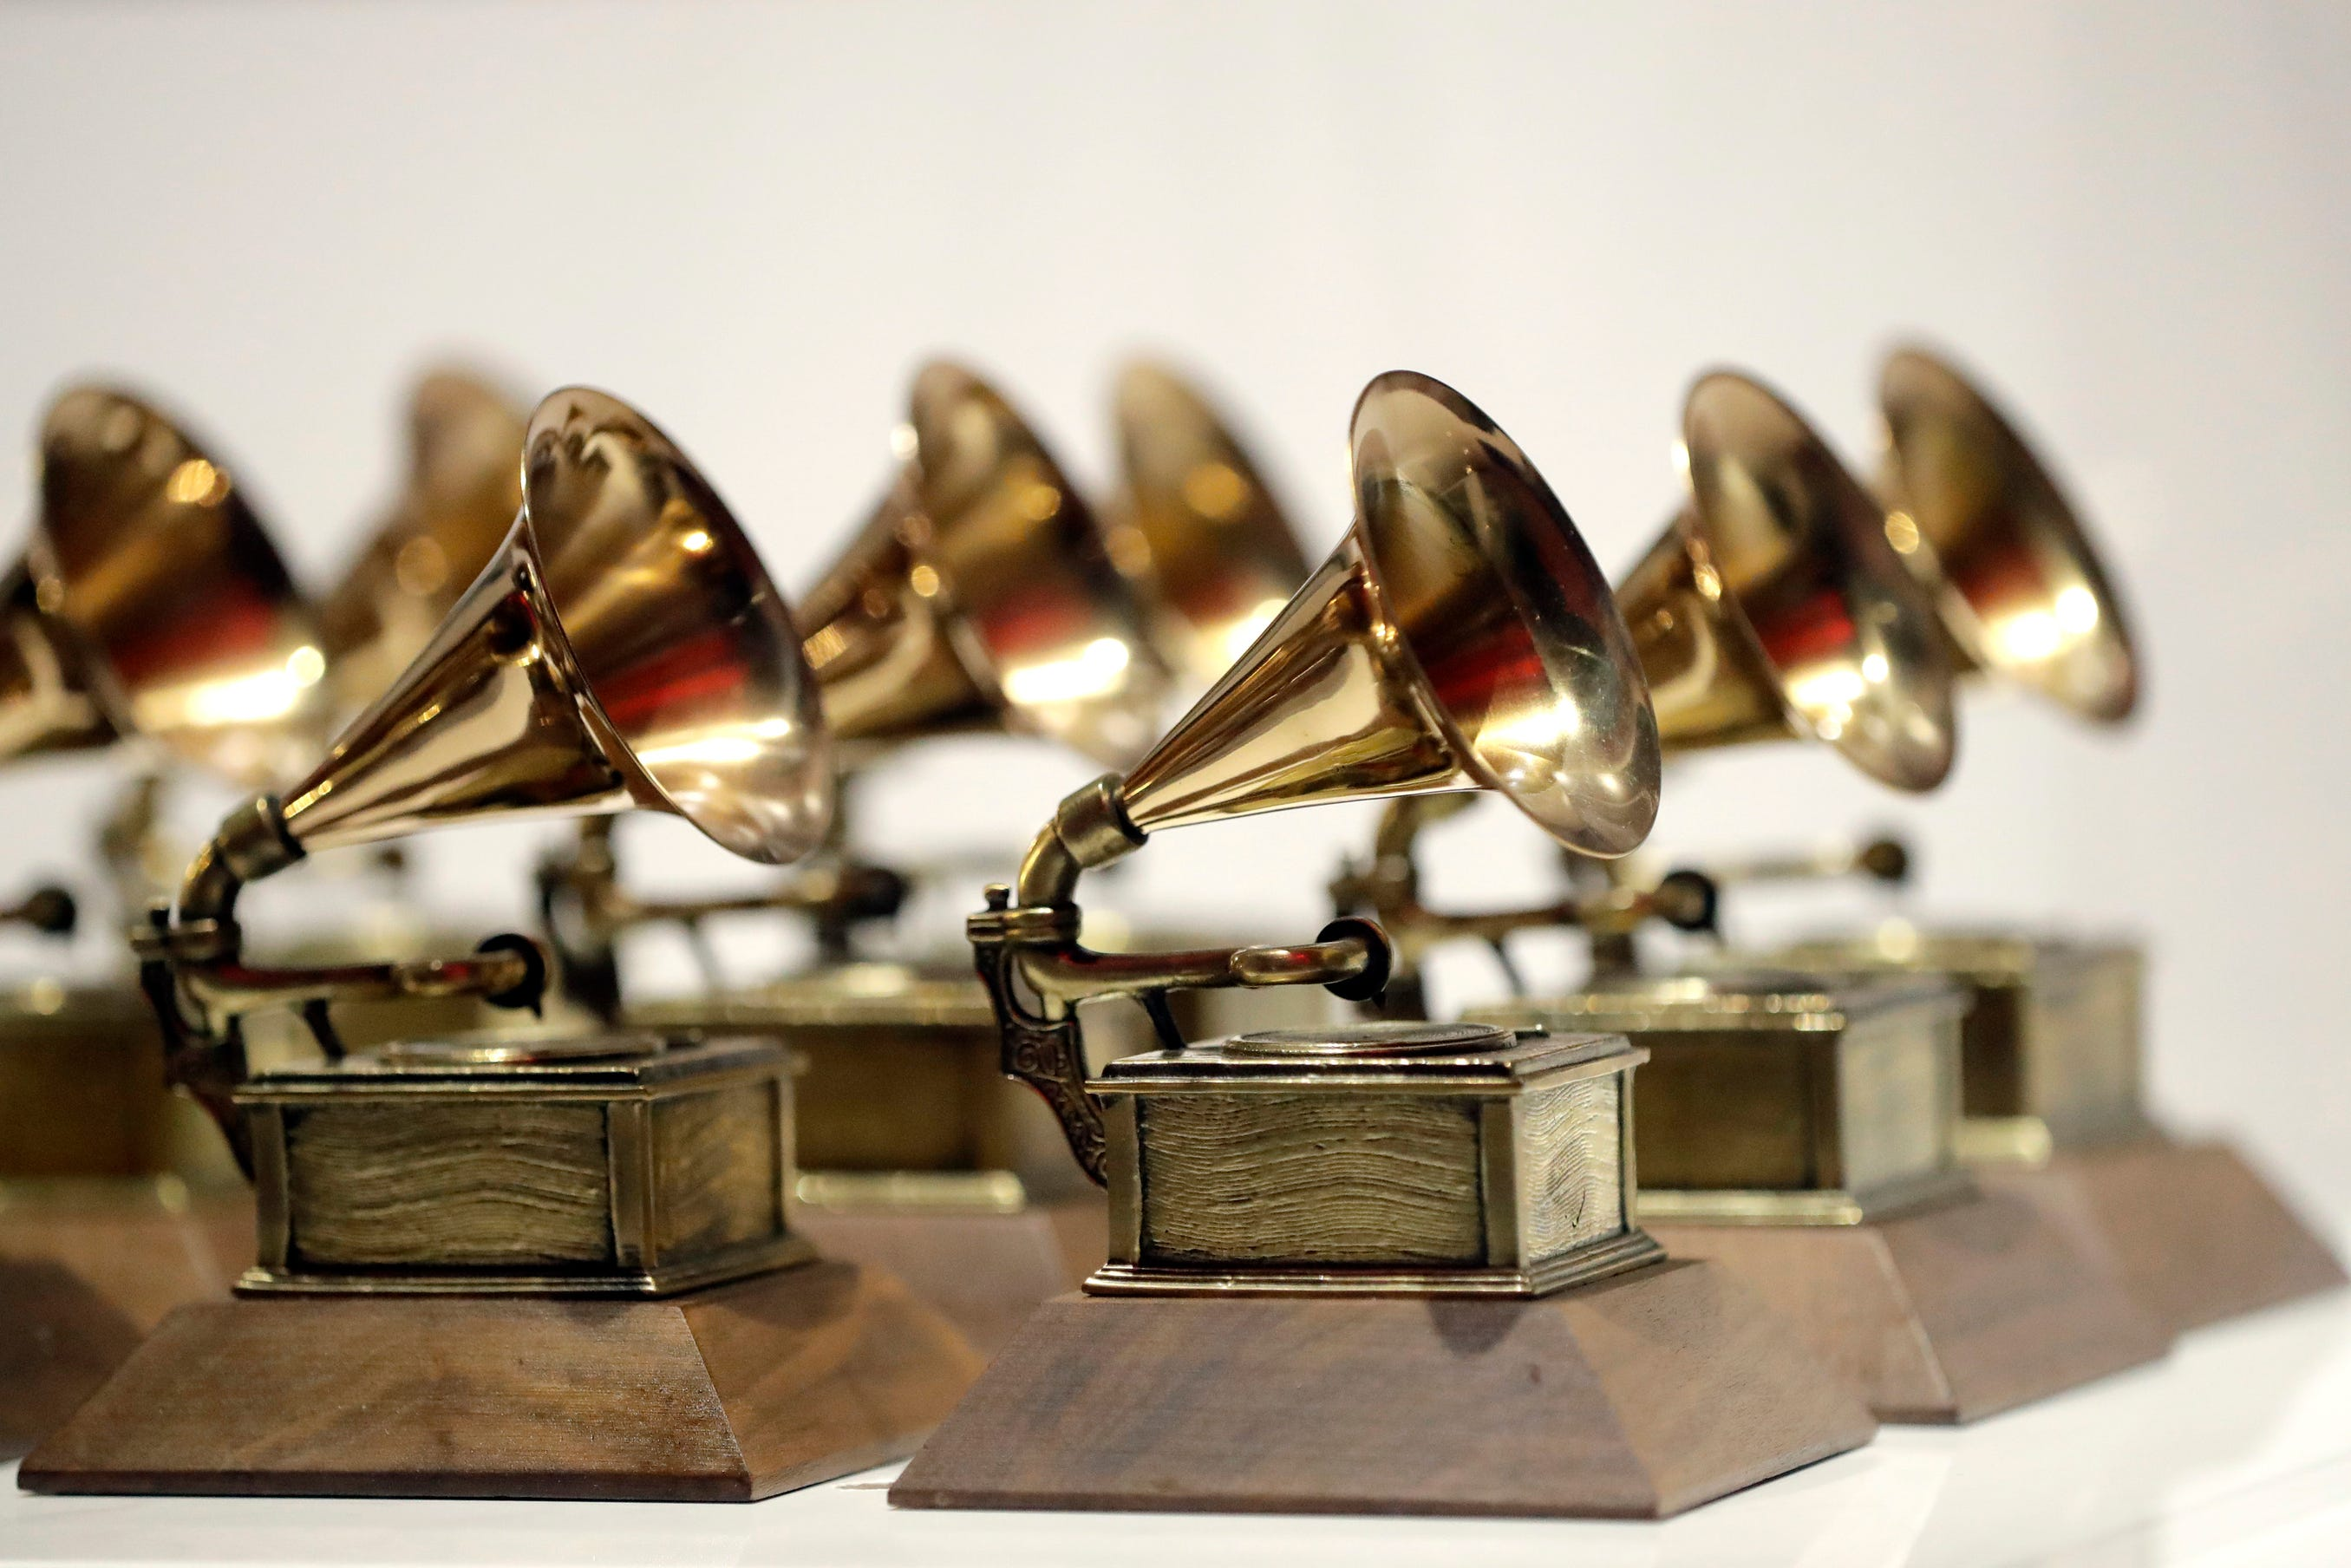 Grammy Awards will have inclusion rider to 'ensure' diversity in 2022